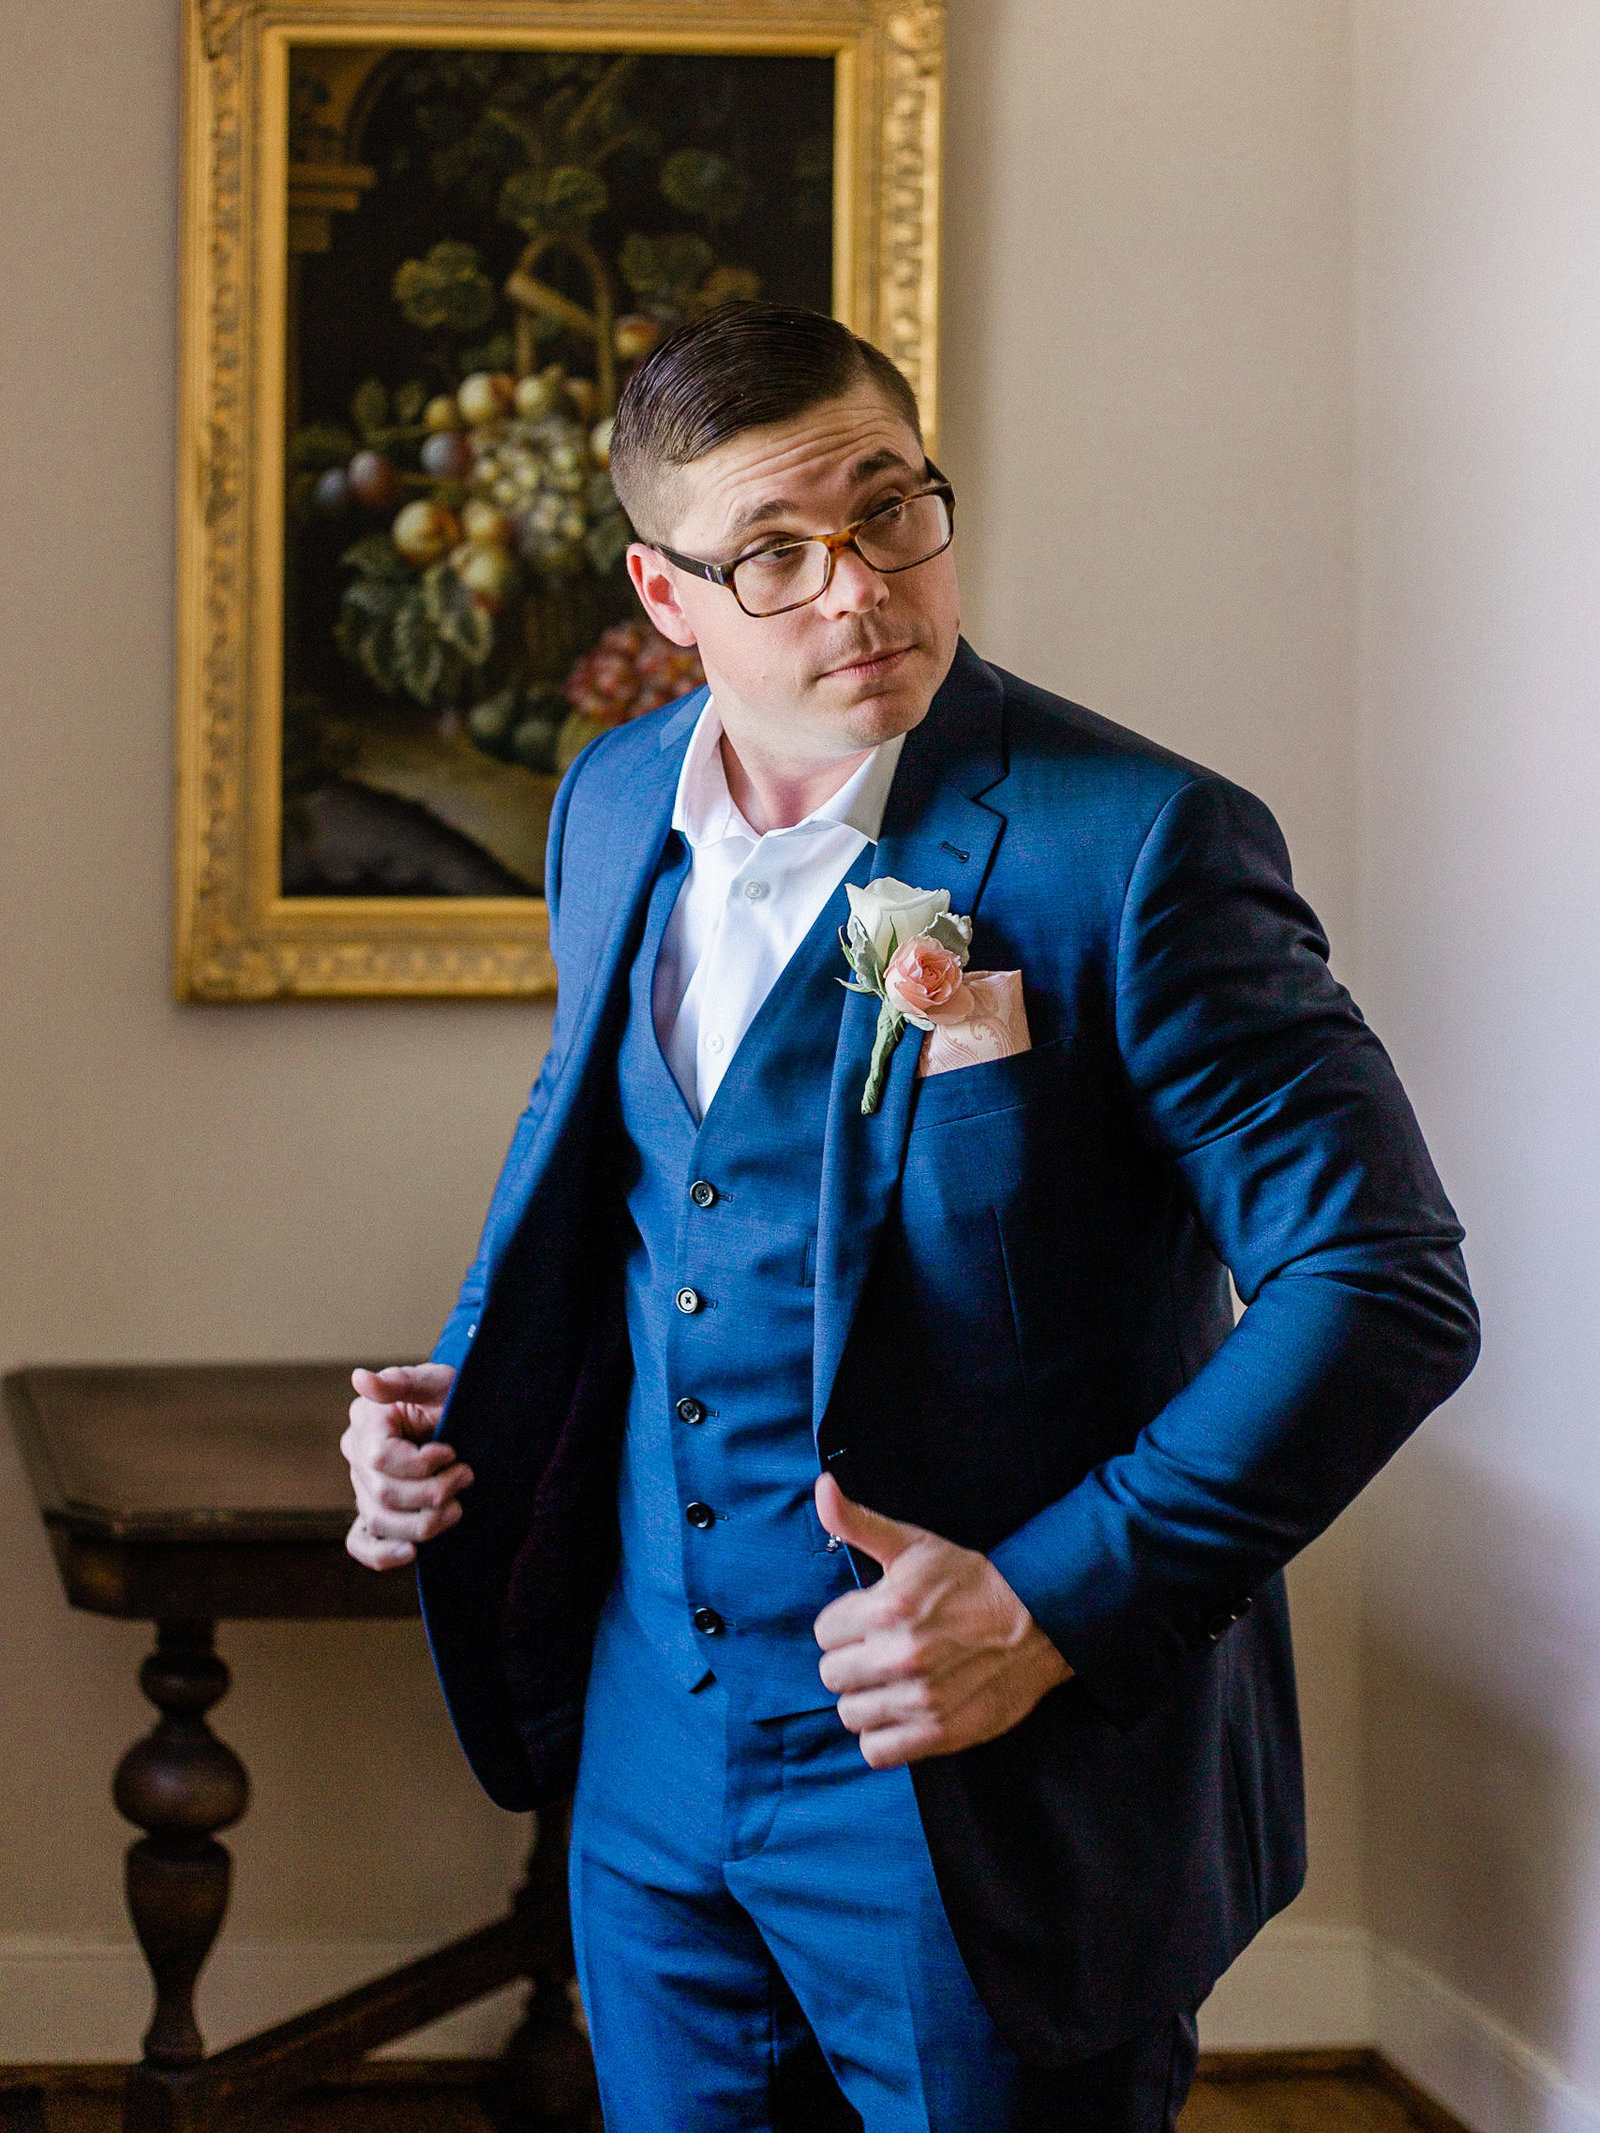 Groom in navy three piece suit looks off to the side as he gets ready in a manor style home